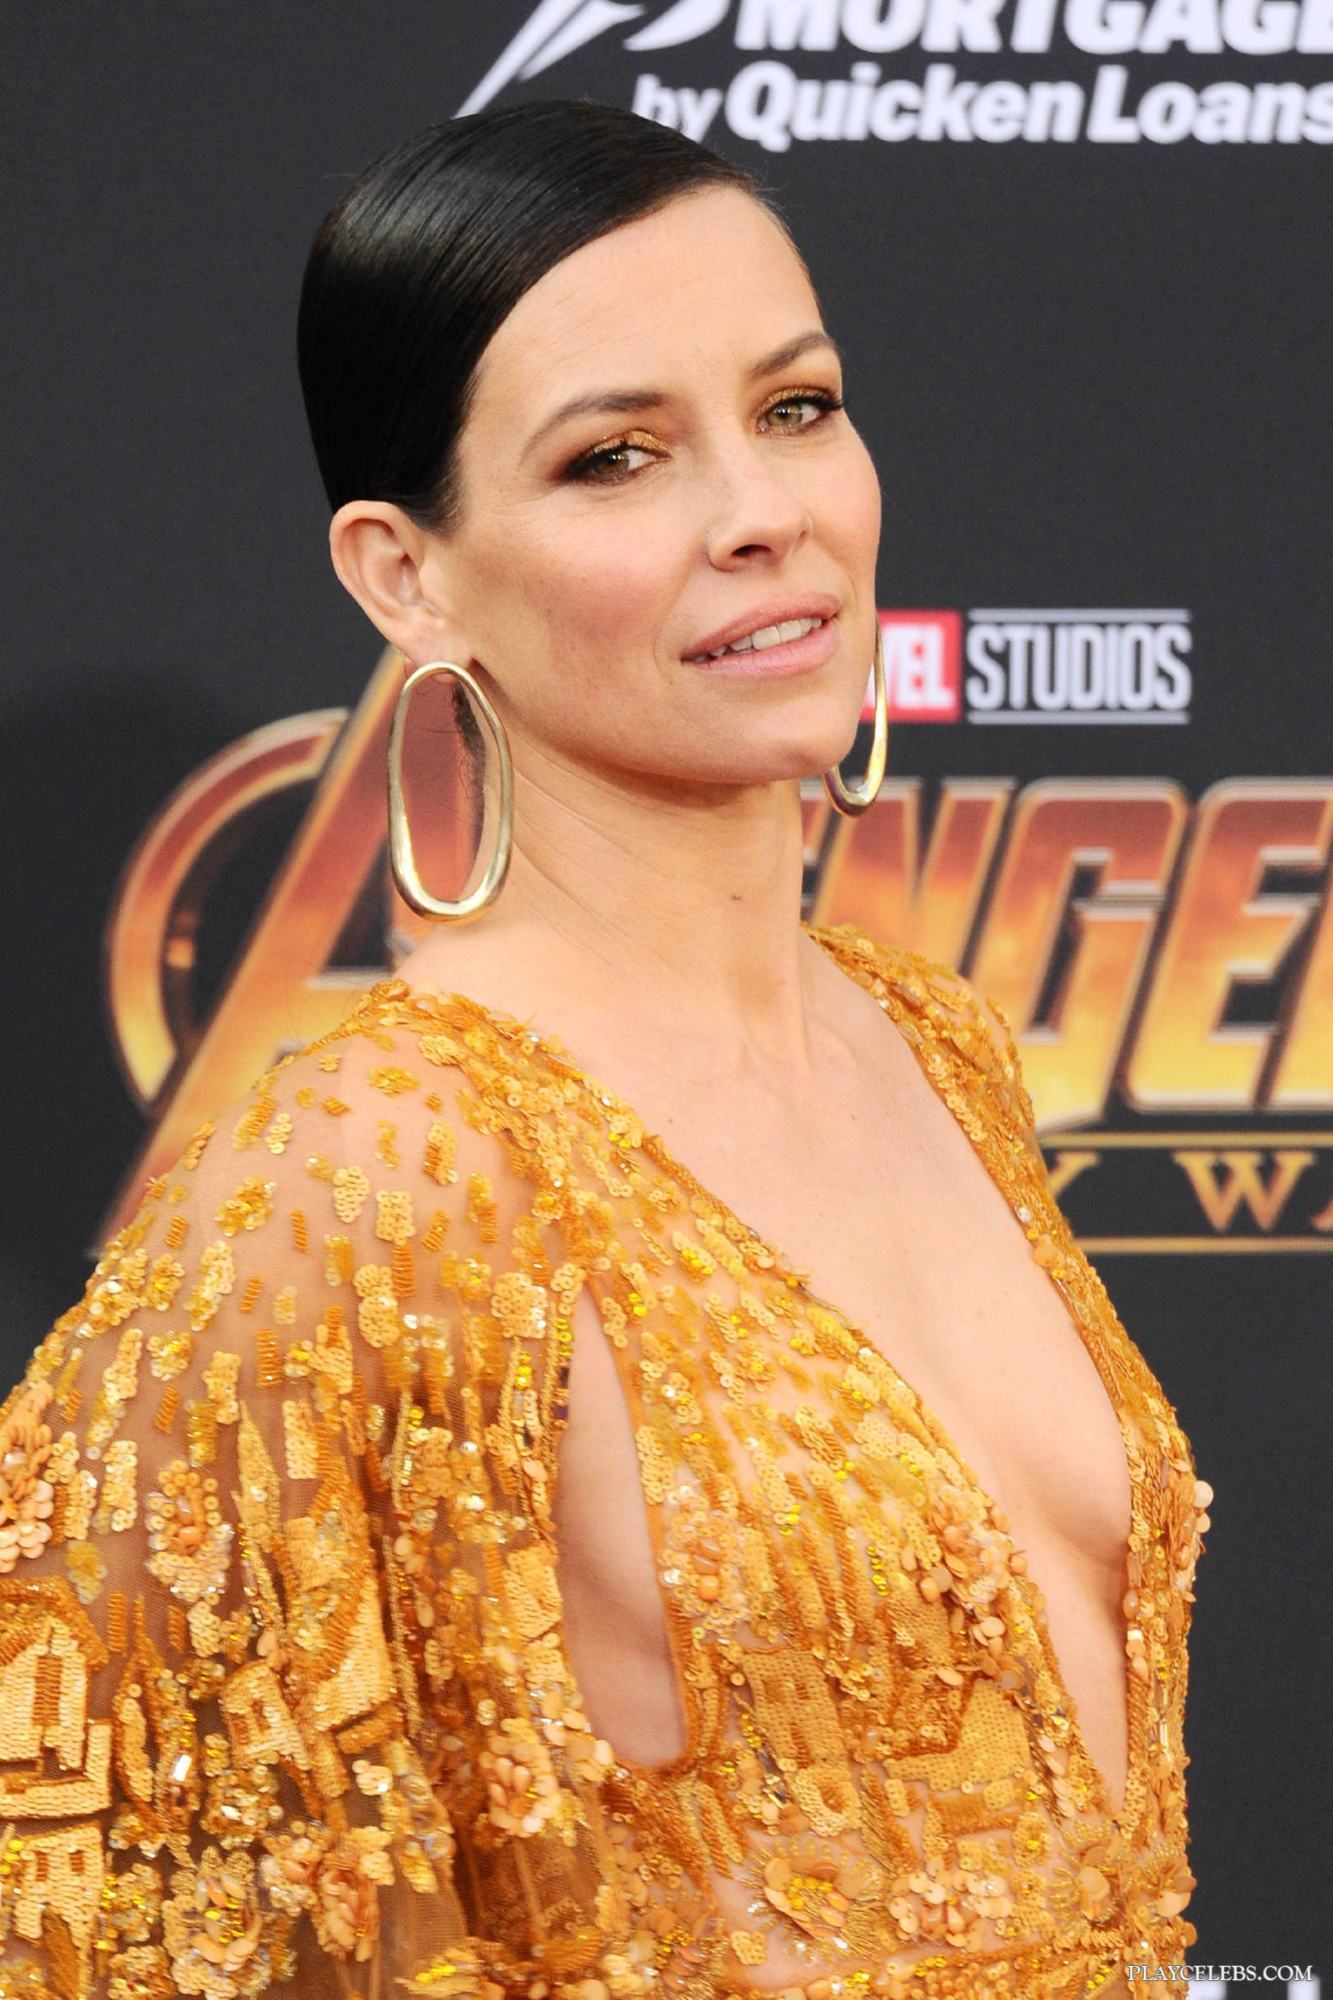 Evangeline Lilly Breasts photo 26